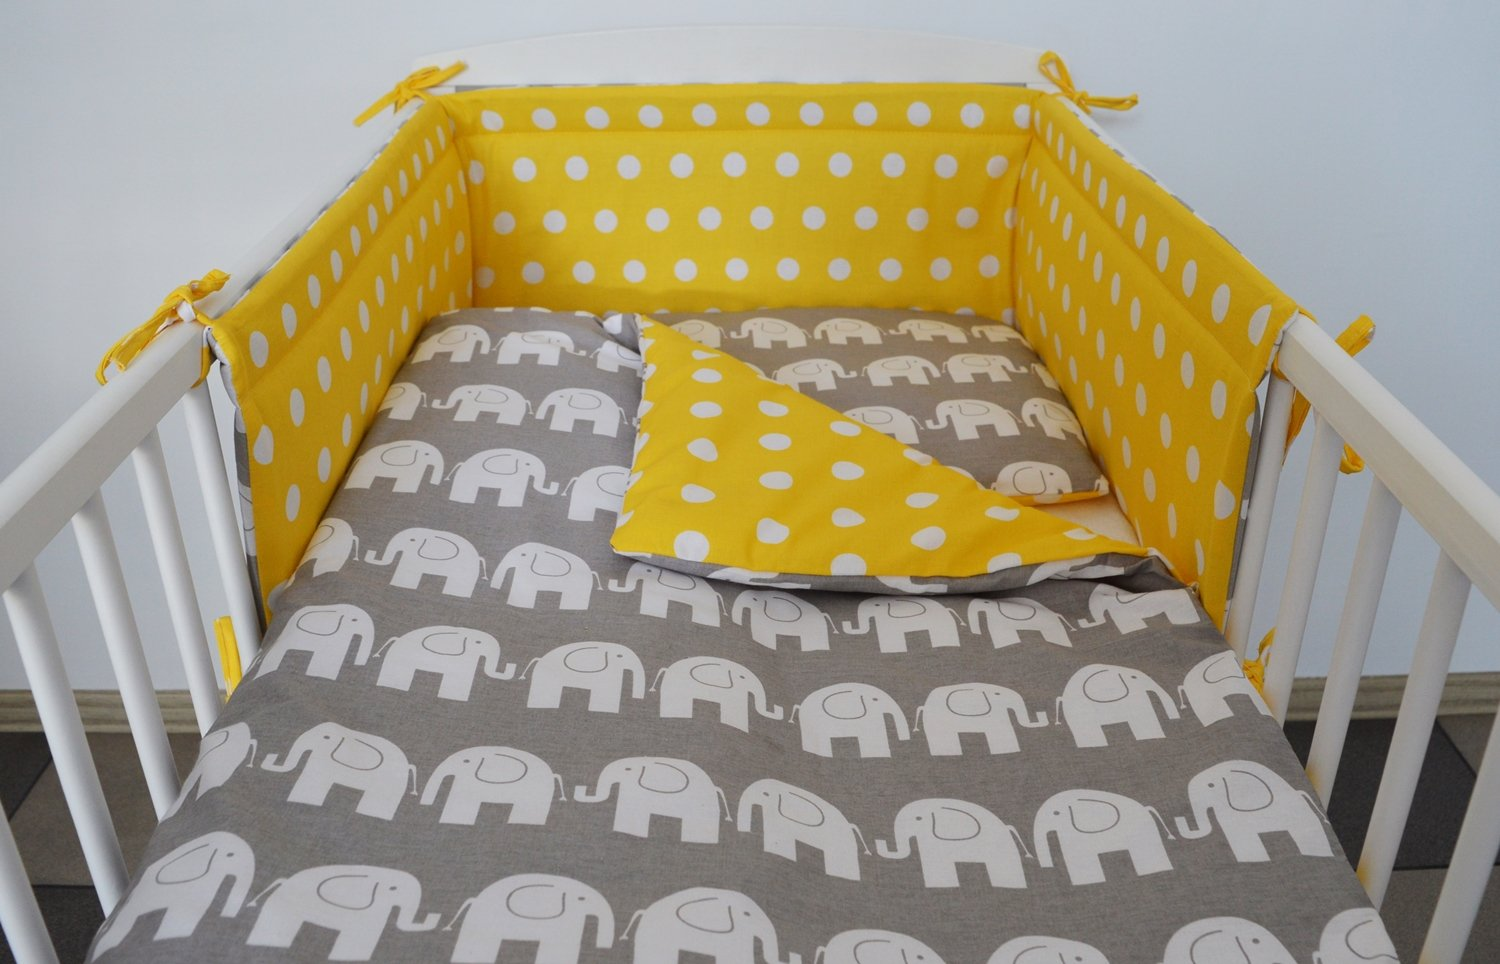 COT Size 120X60, Grey Elephant - Yellow with DOTS - Reversible 3 pc Baby Bedding Set for COT 120X60 OR COT Bed 140X70 Stars-Elephant-